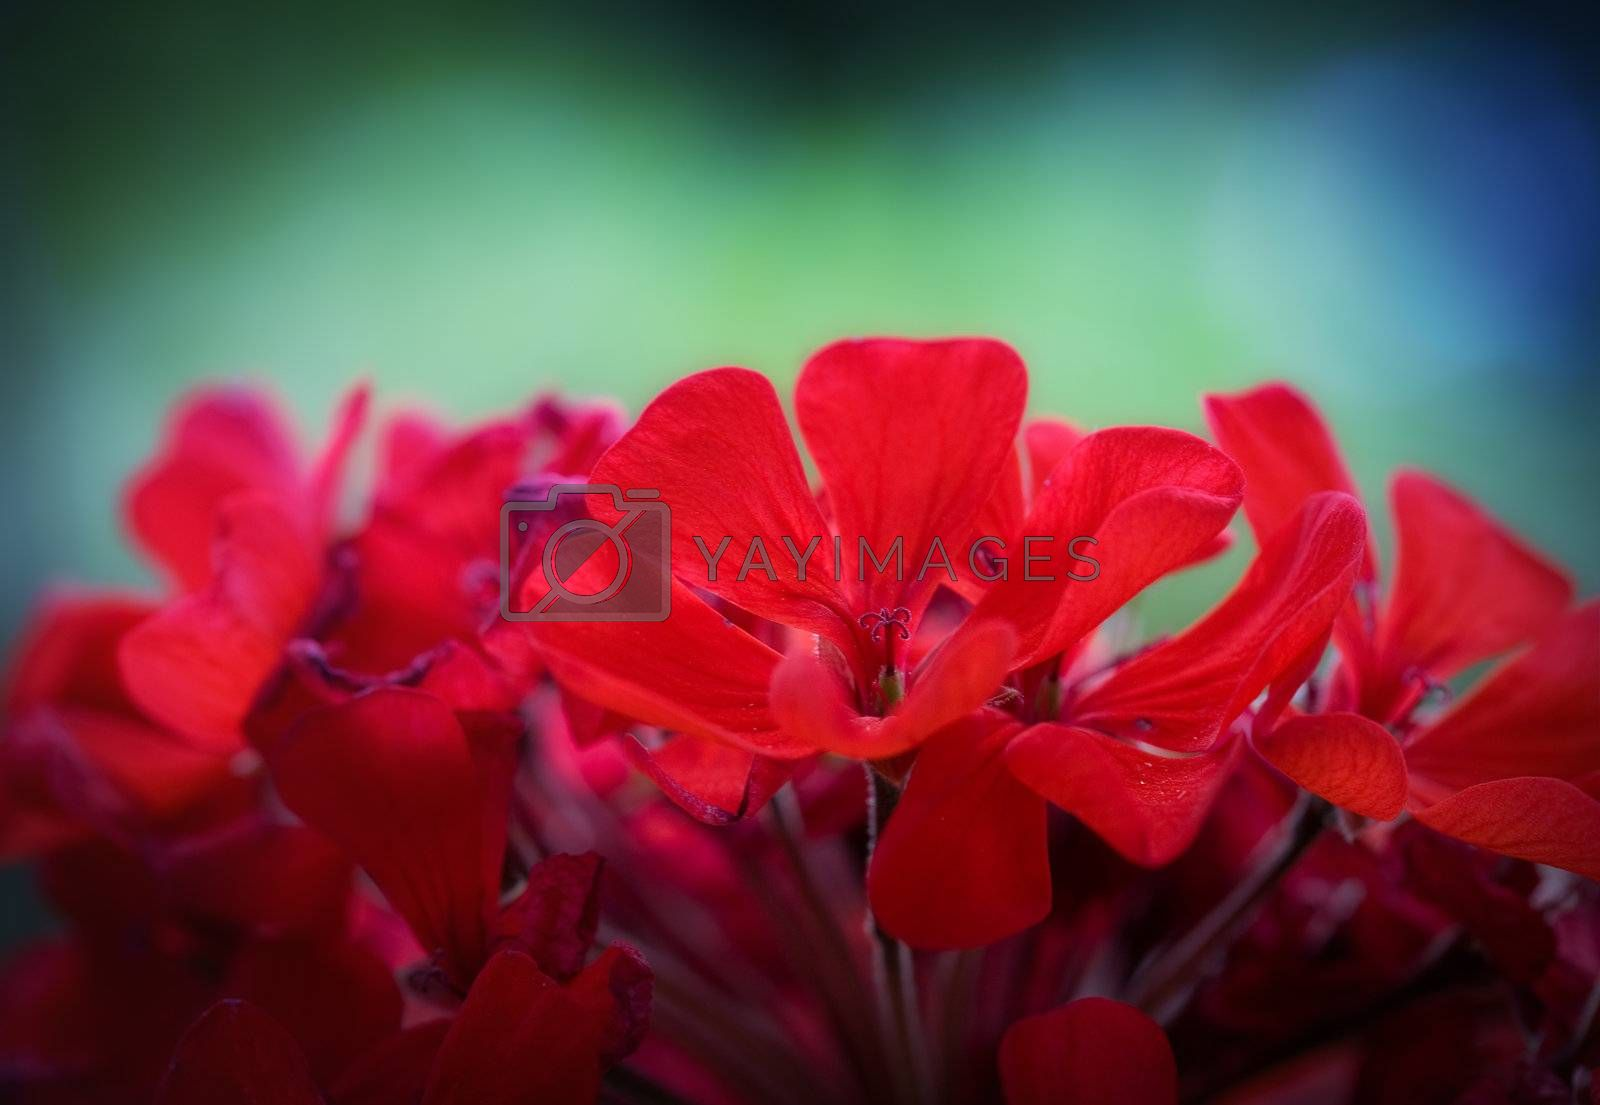 Colorful flower macro photo with shallow DOF